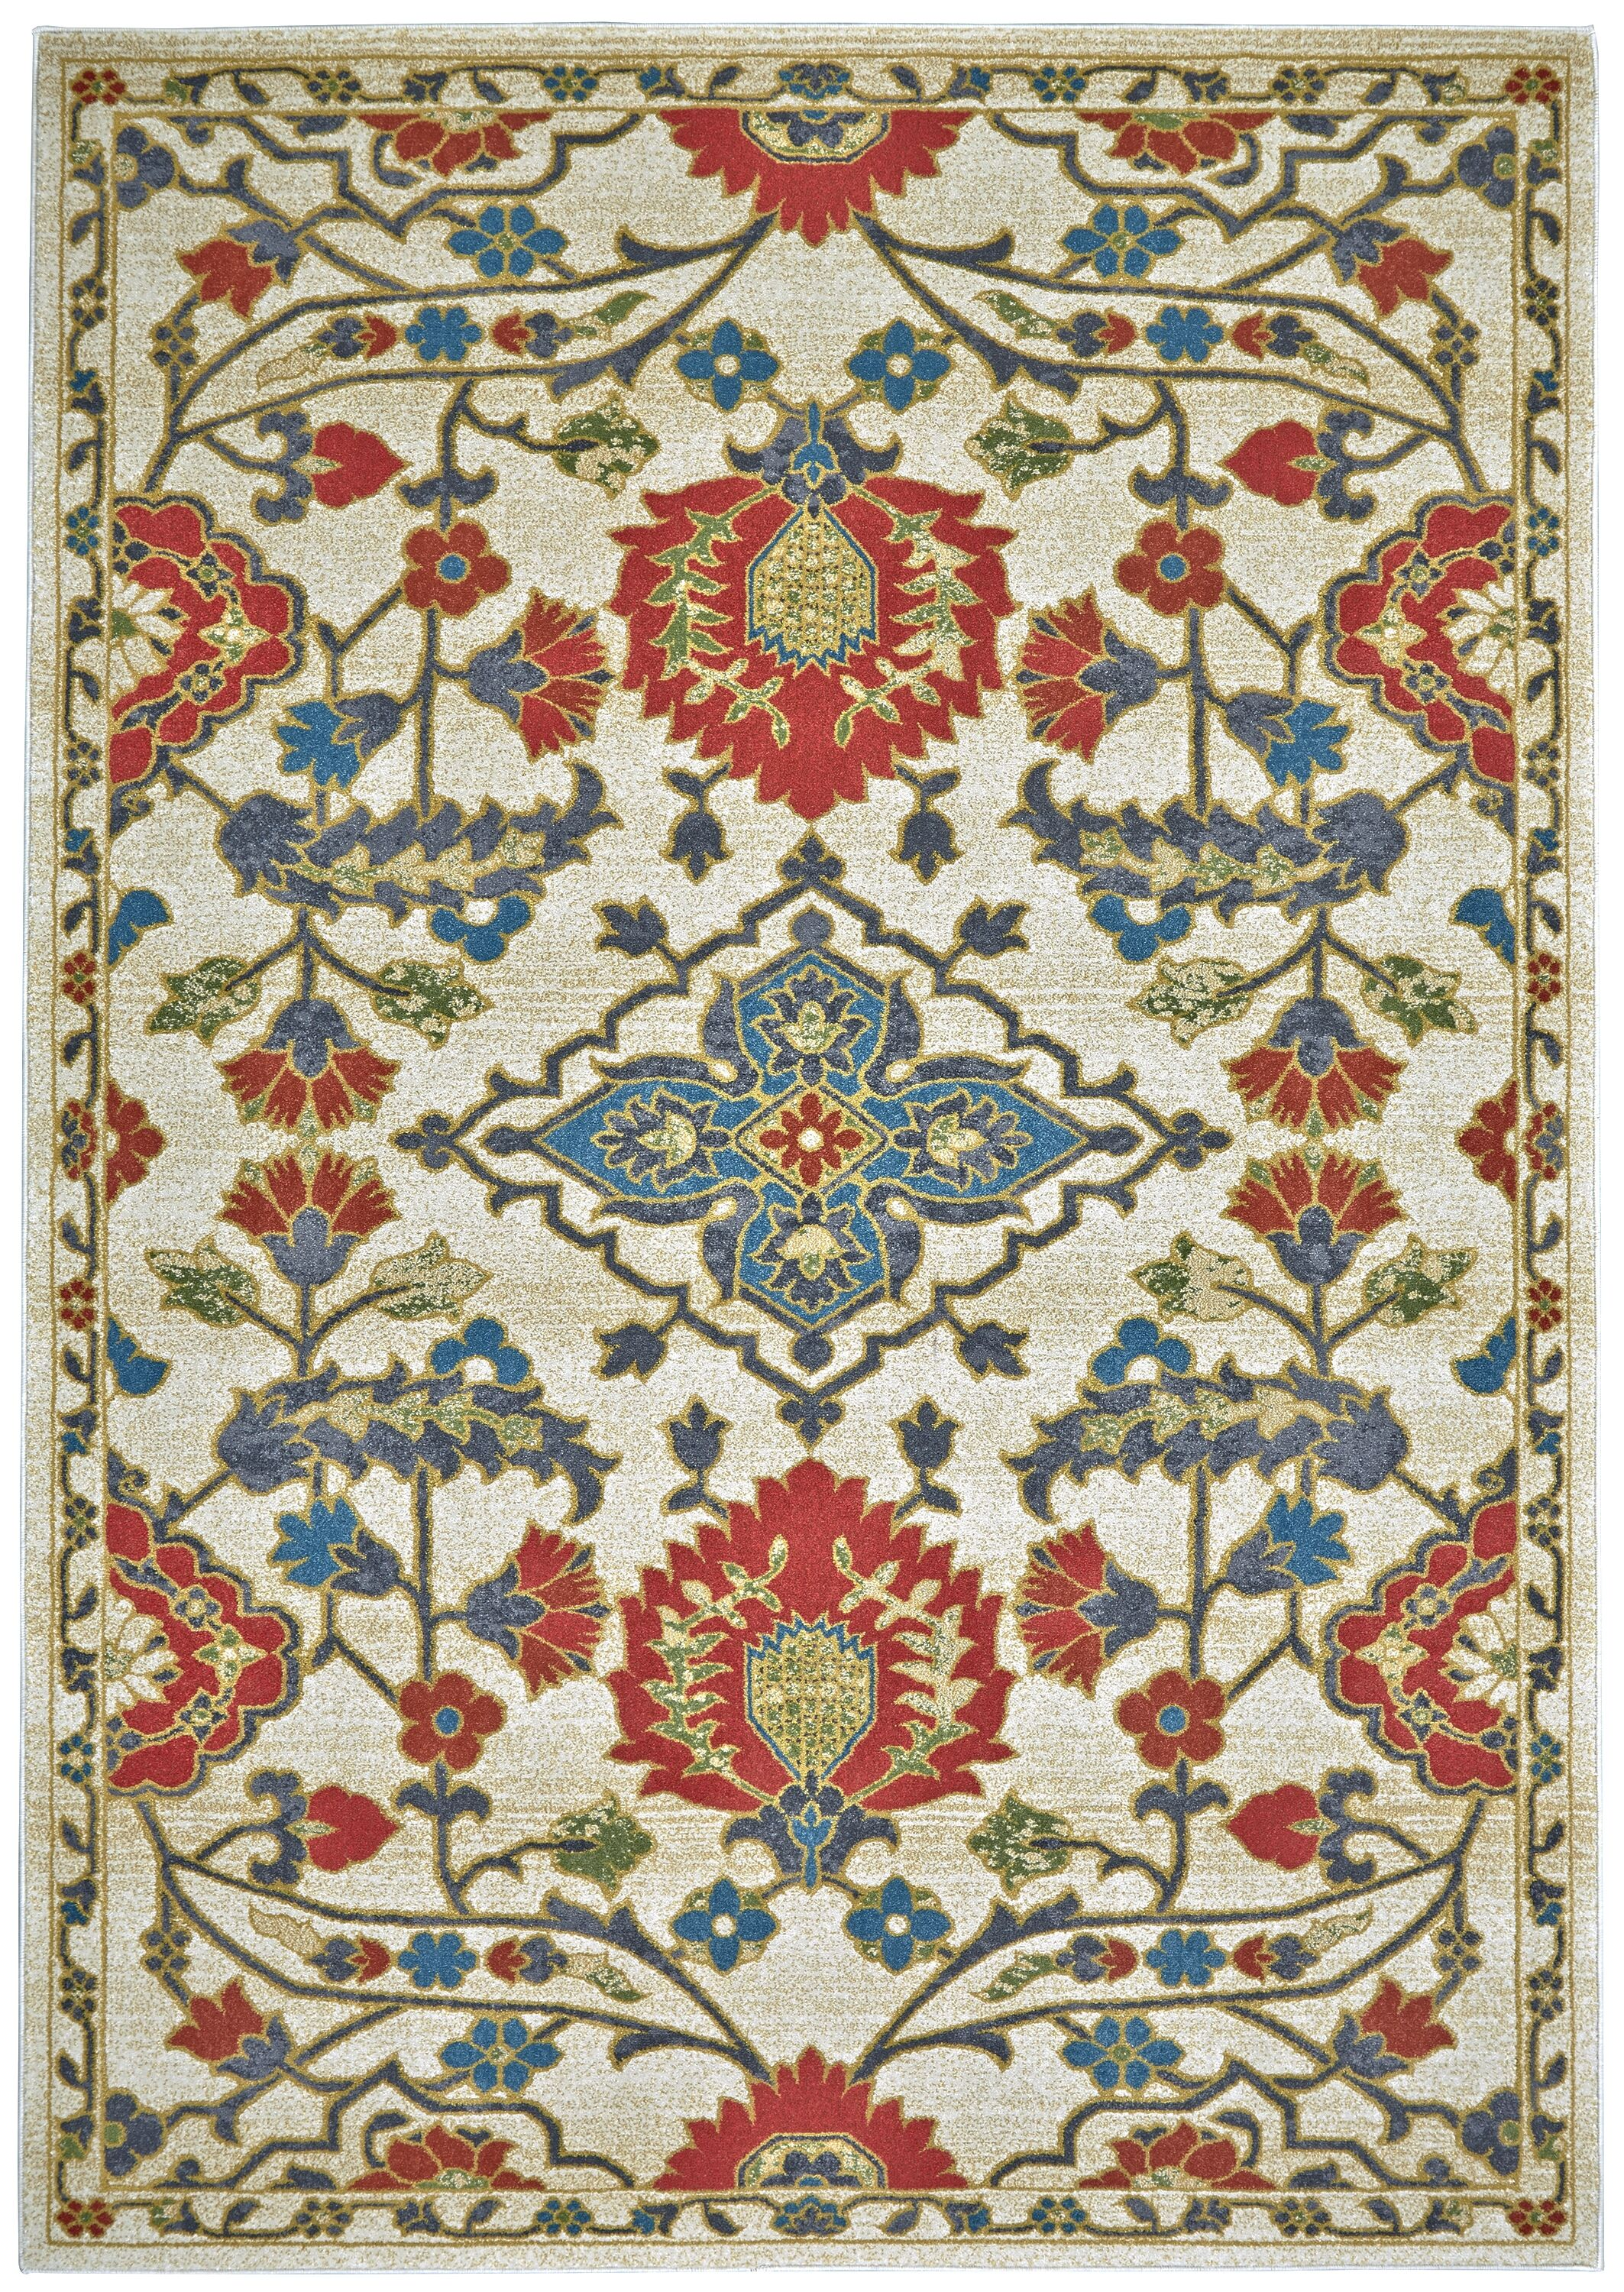 Yenene Red Area Rug Rug Size: Runner 2'1 x 7'1